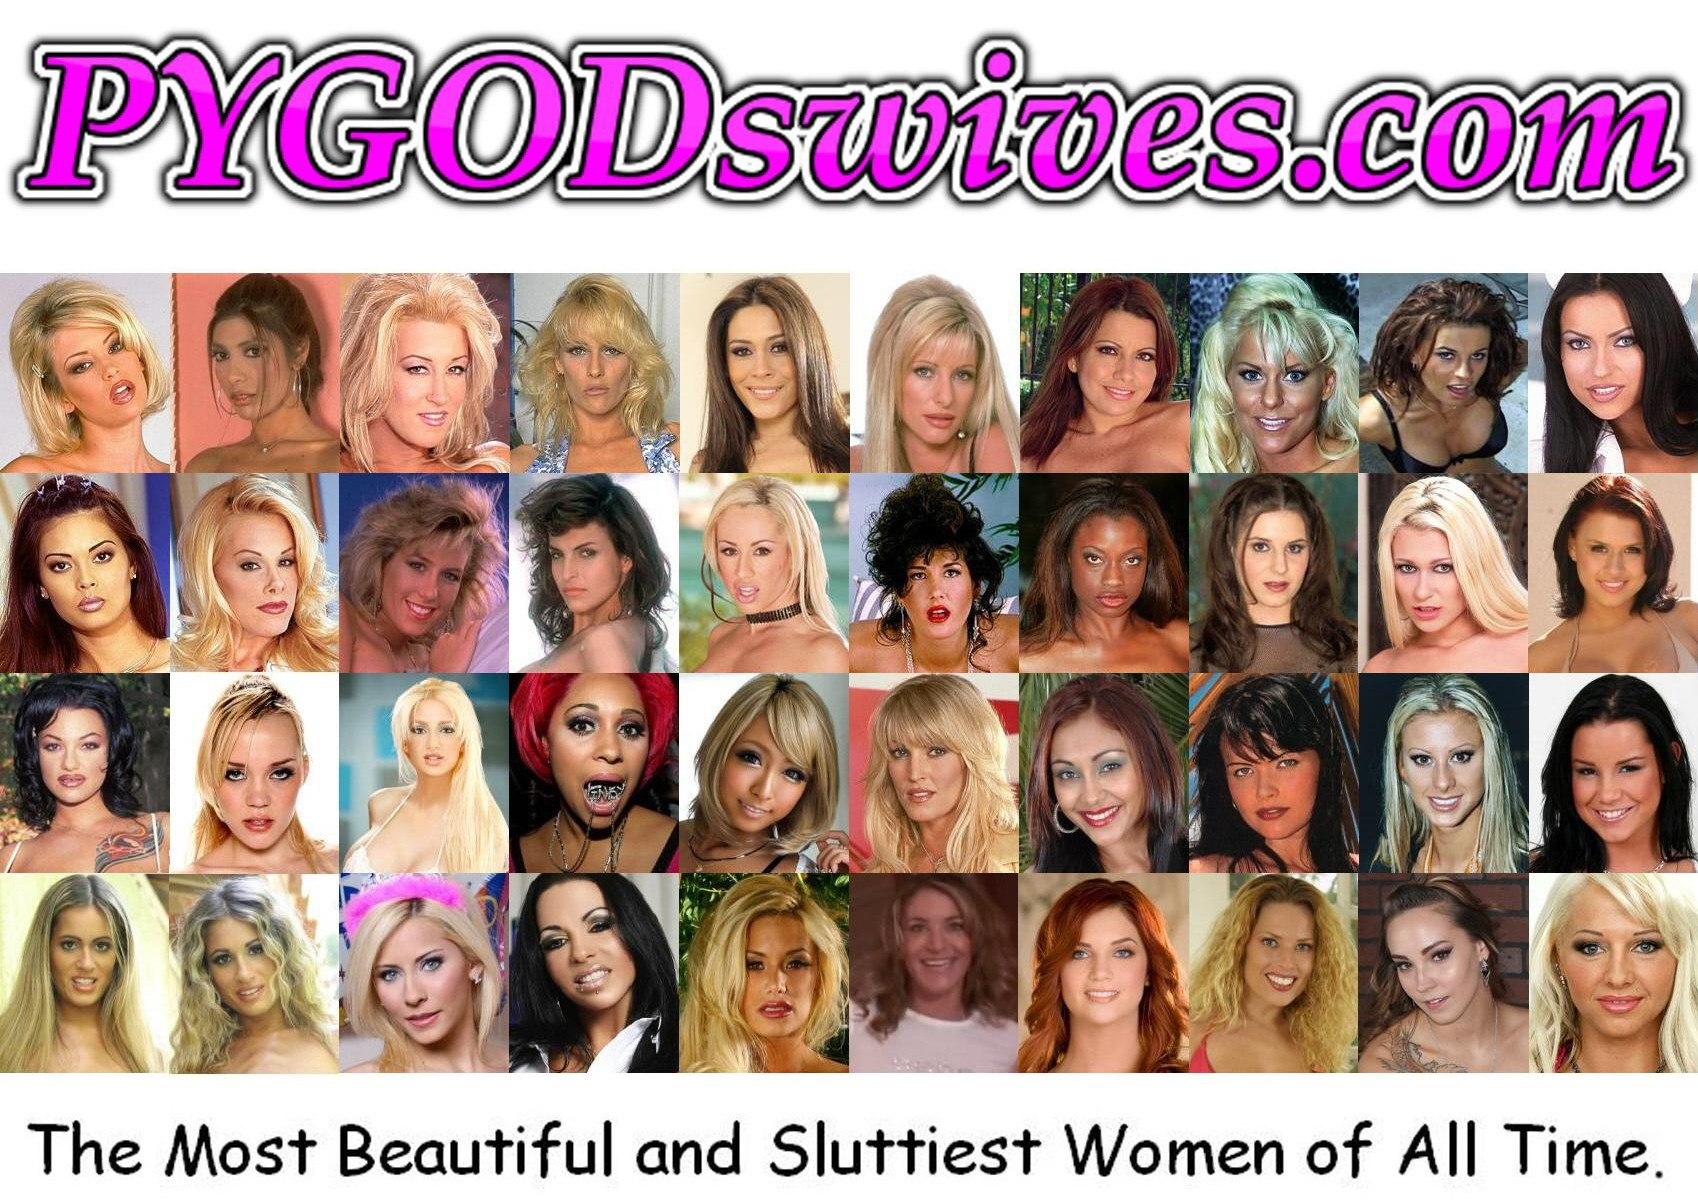 PYGODswives Top 40 PornStars